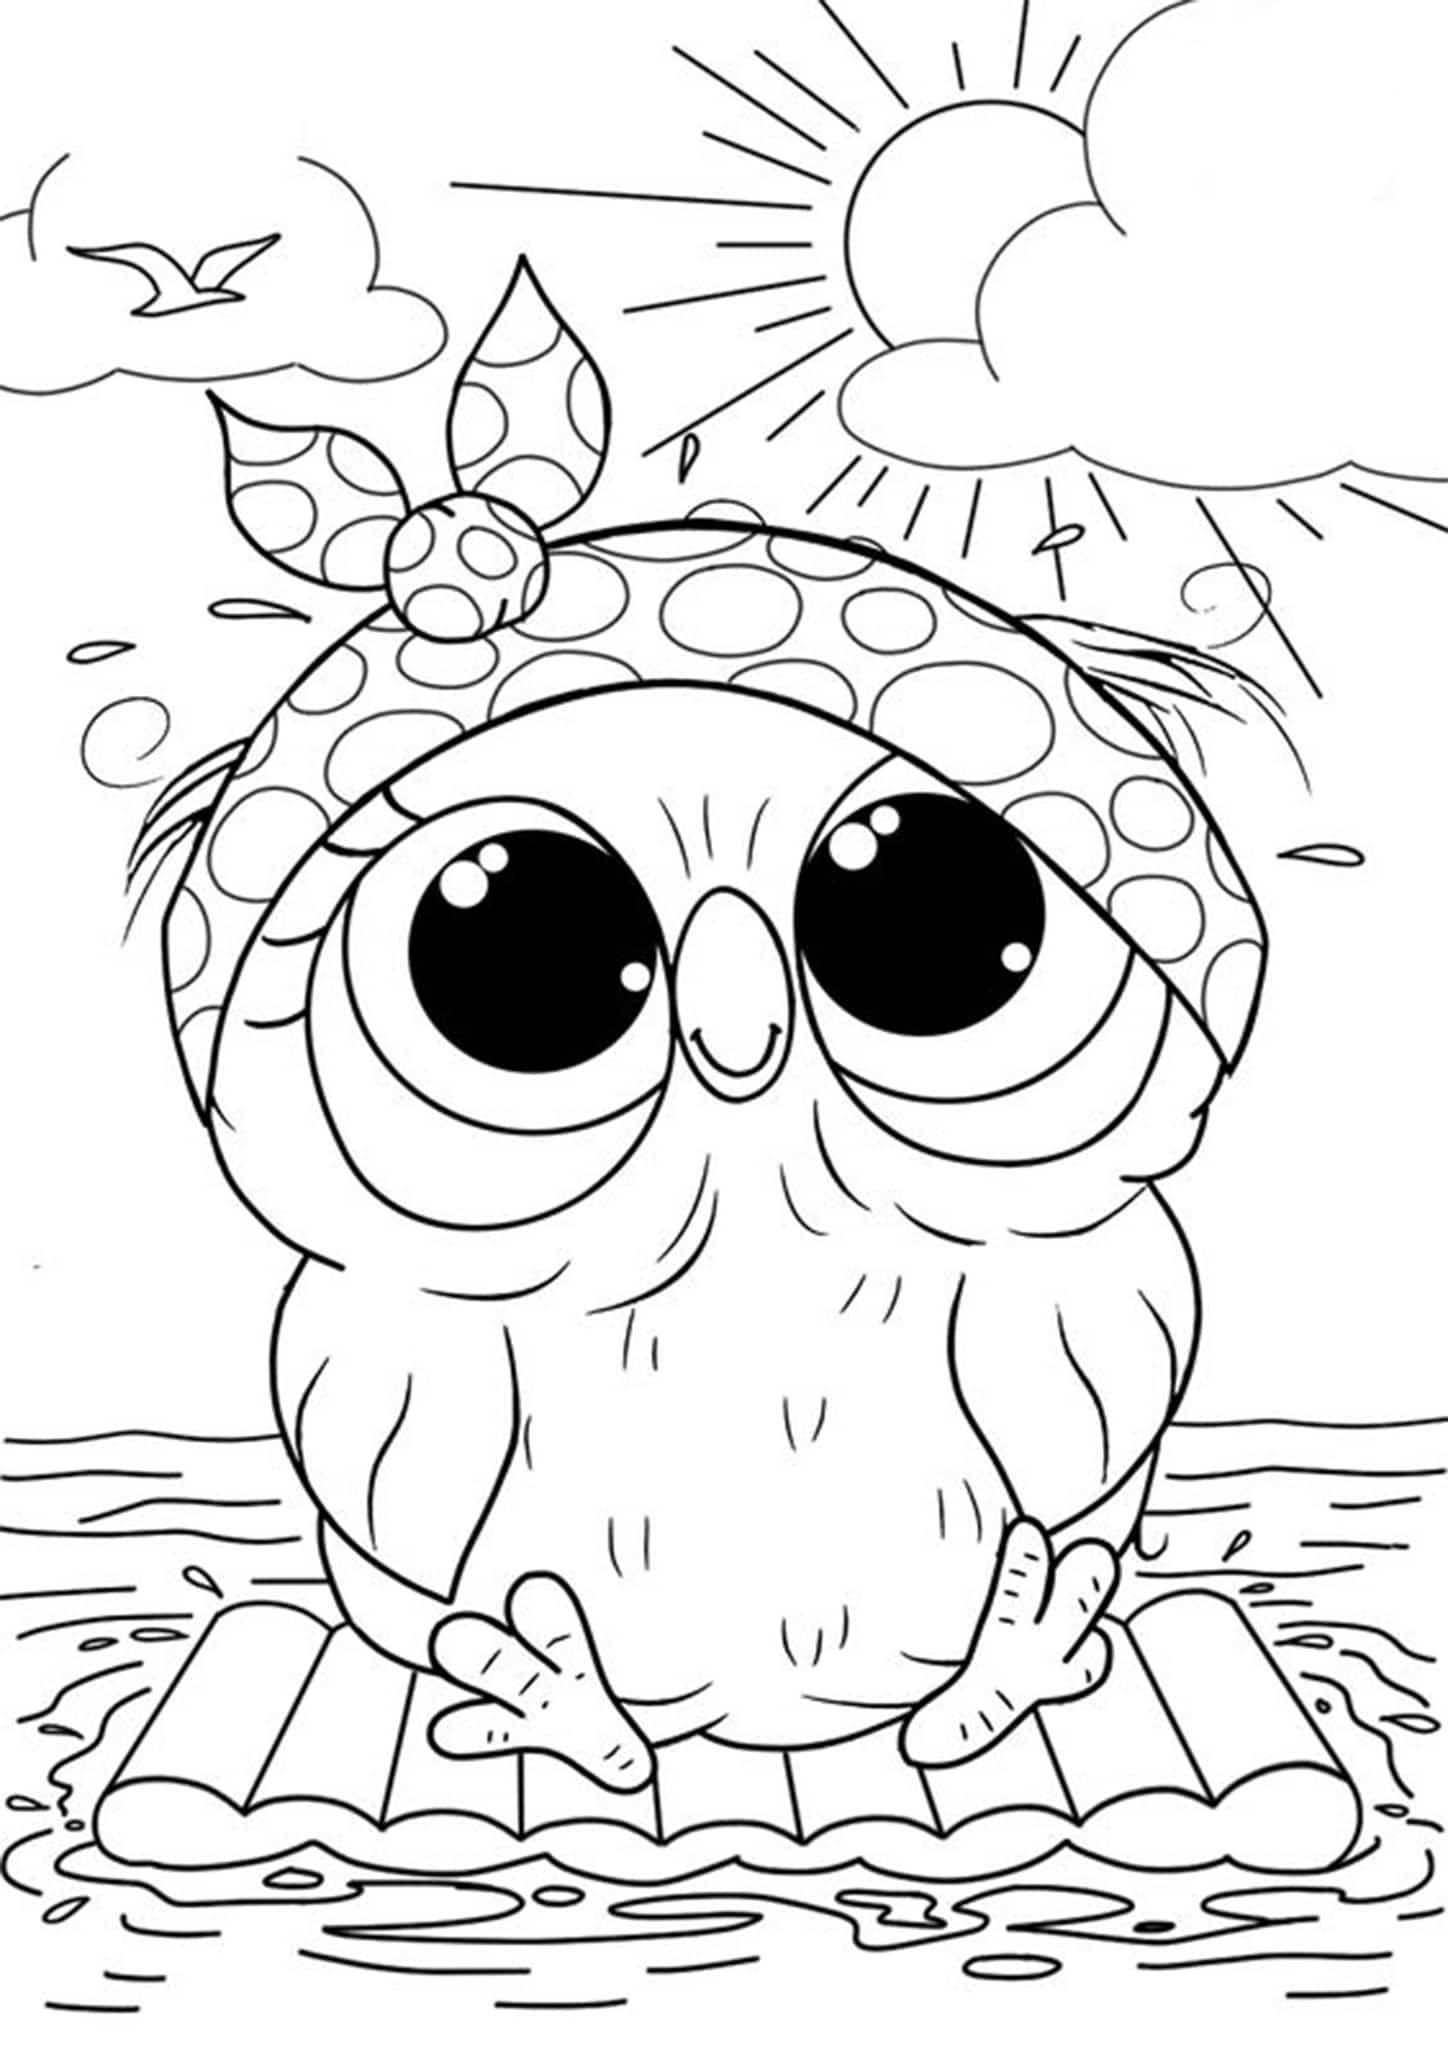 free printable coloring pages of owls free easy to print owl coloring pages tulamama free owls pages coloring printable of